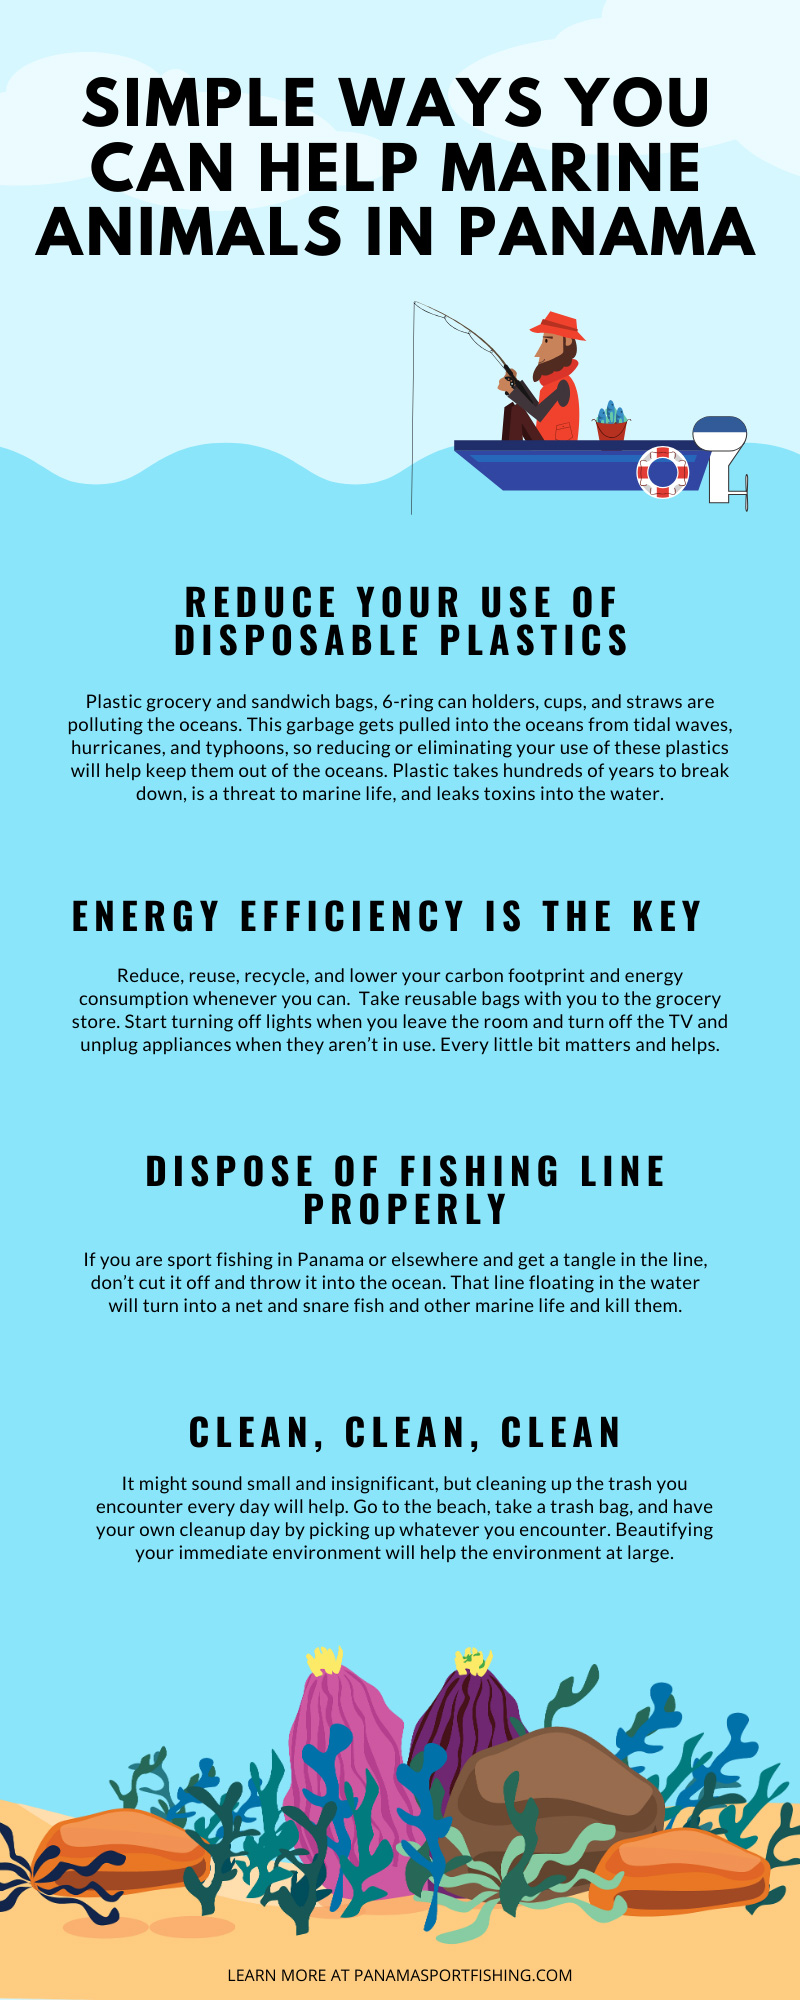 Simple Ways You Can Help Marine Animals in Panama infographic